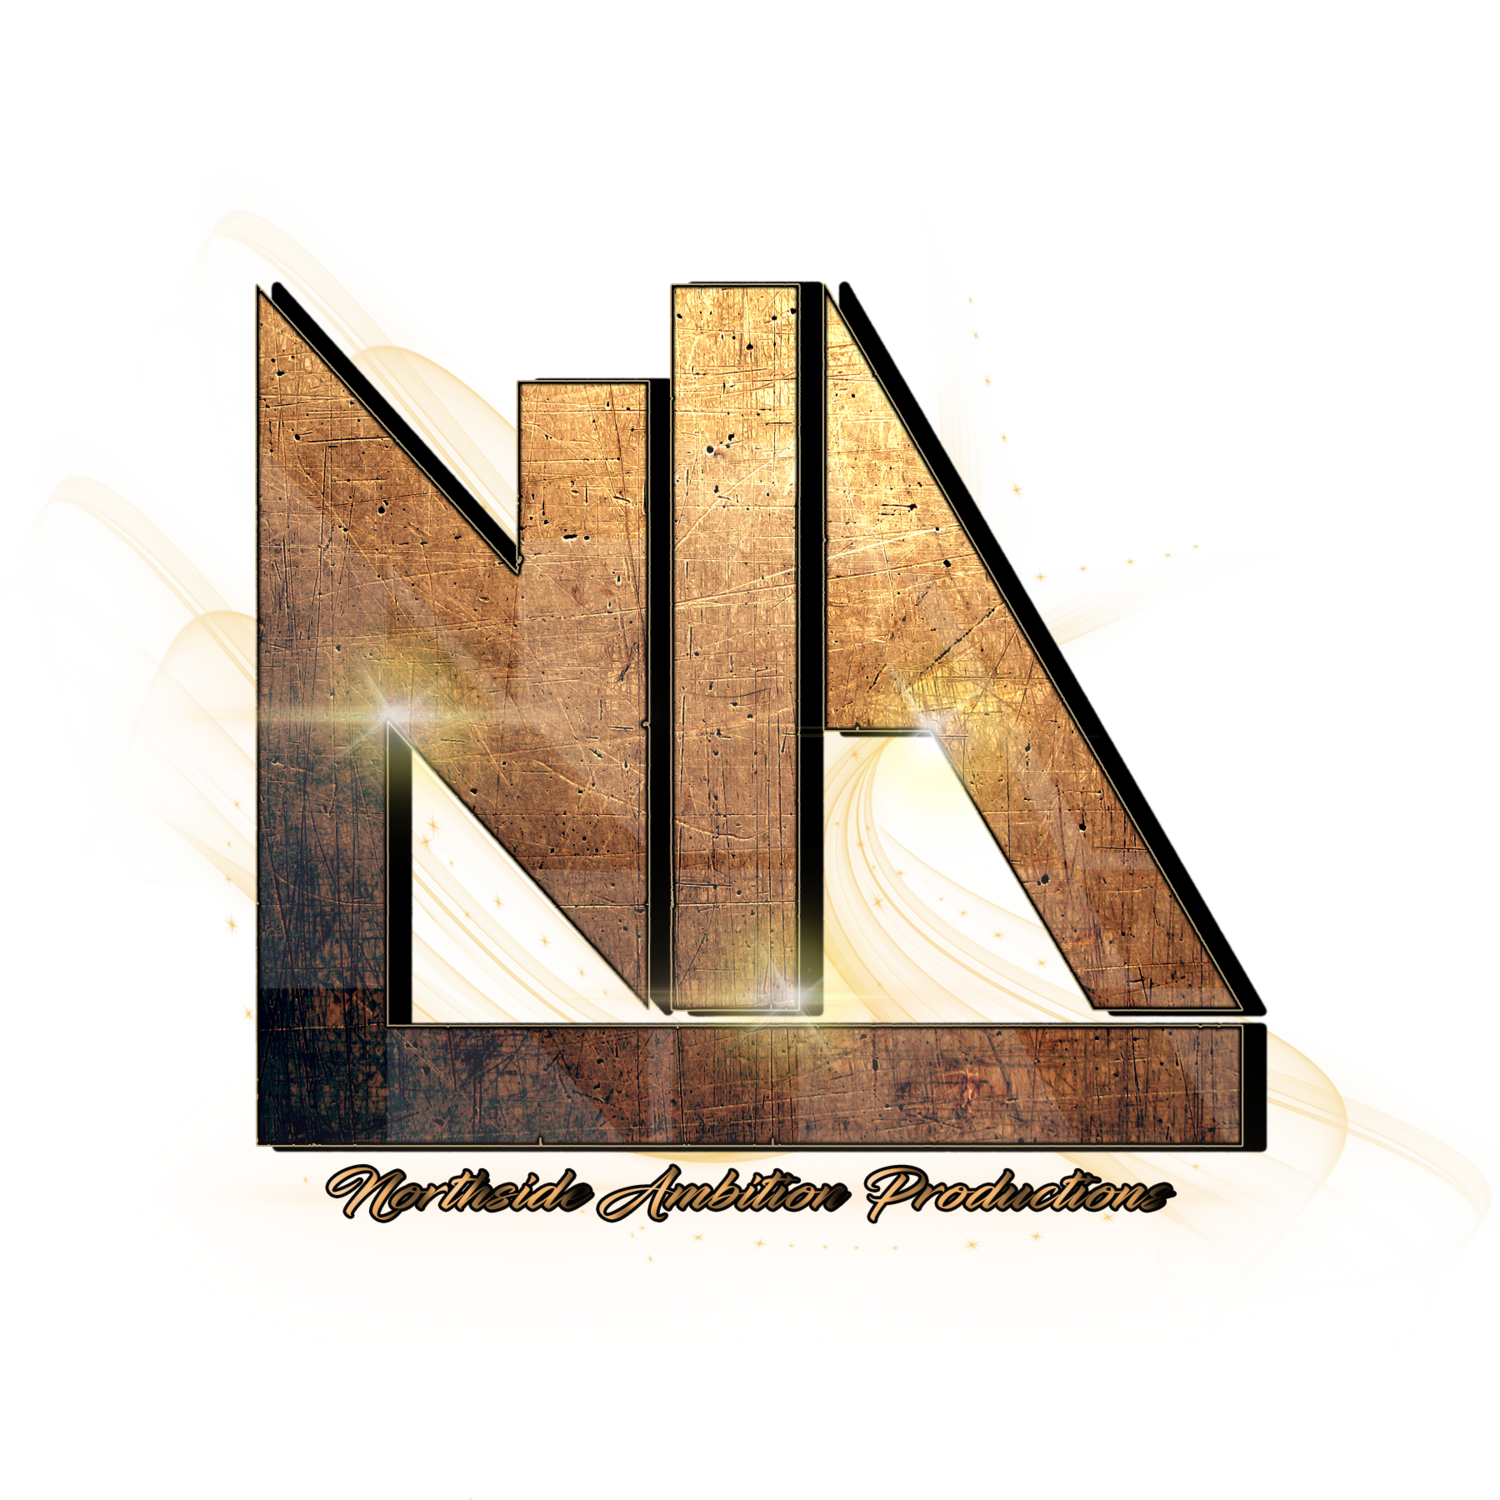 Northside Ambition Productions